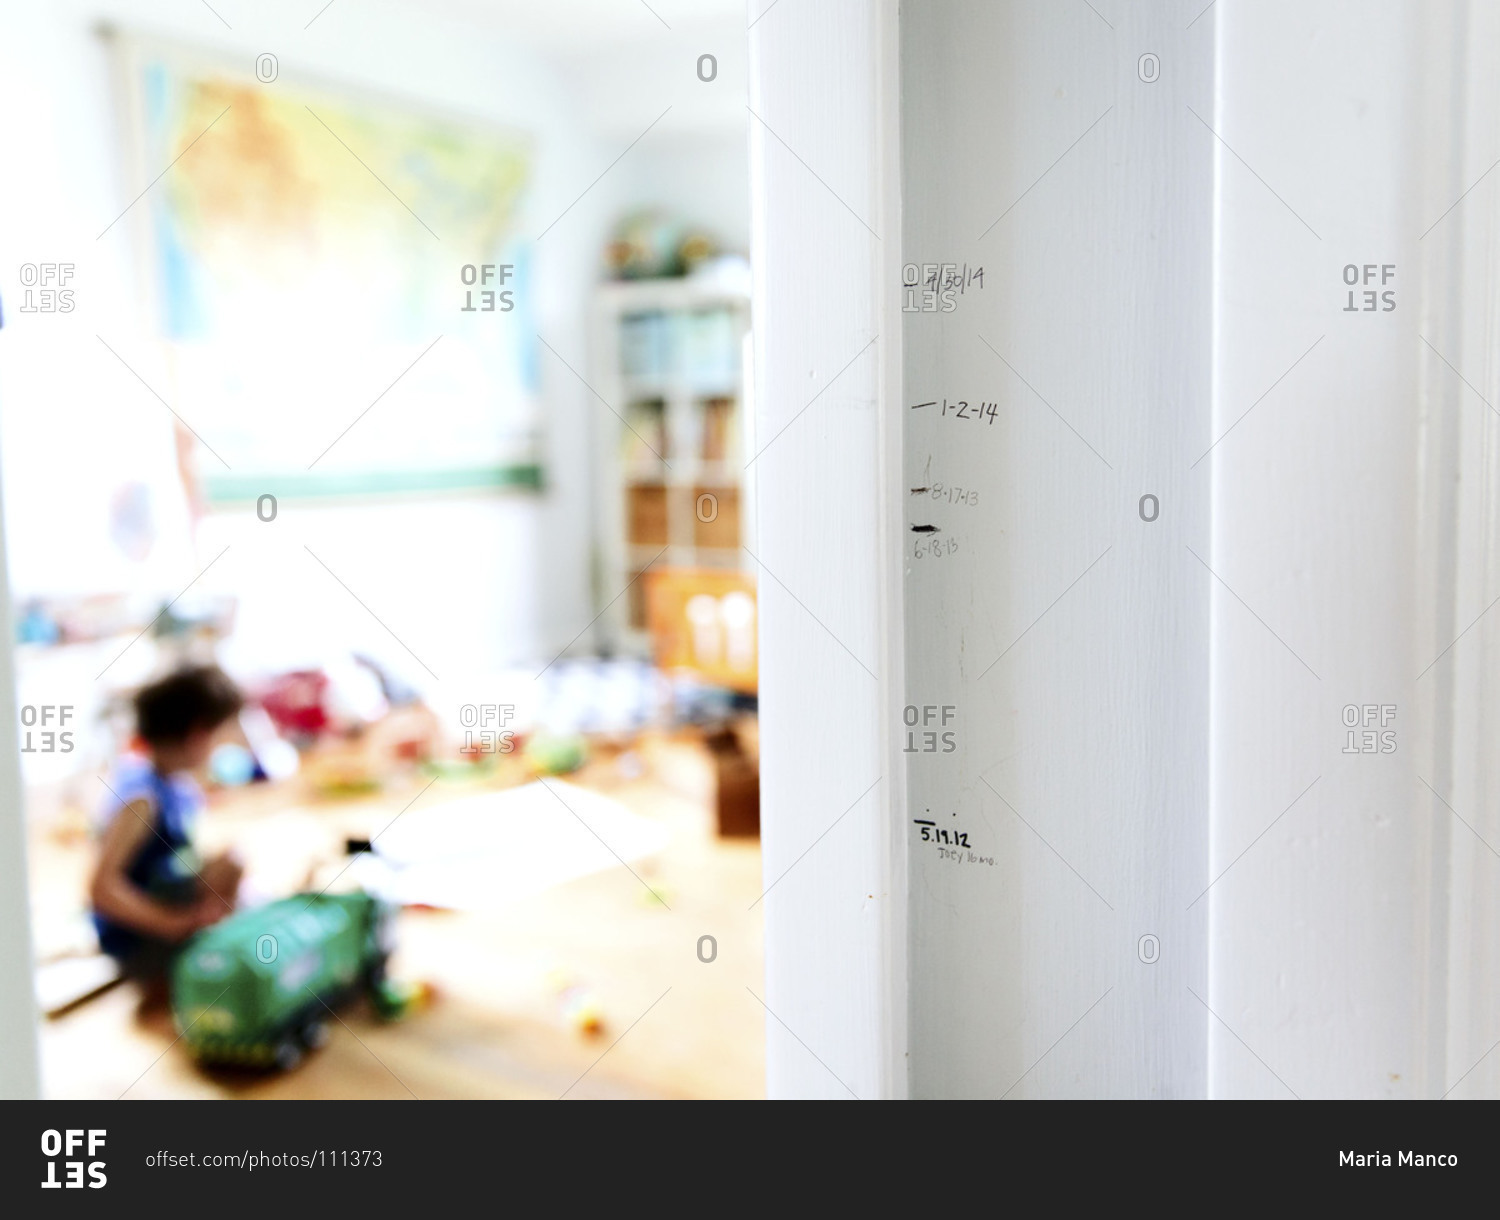 Height markings on a door frame stock photo - OFFSET